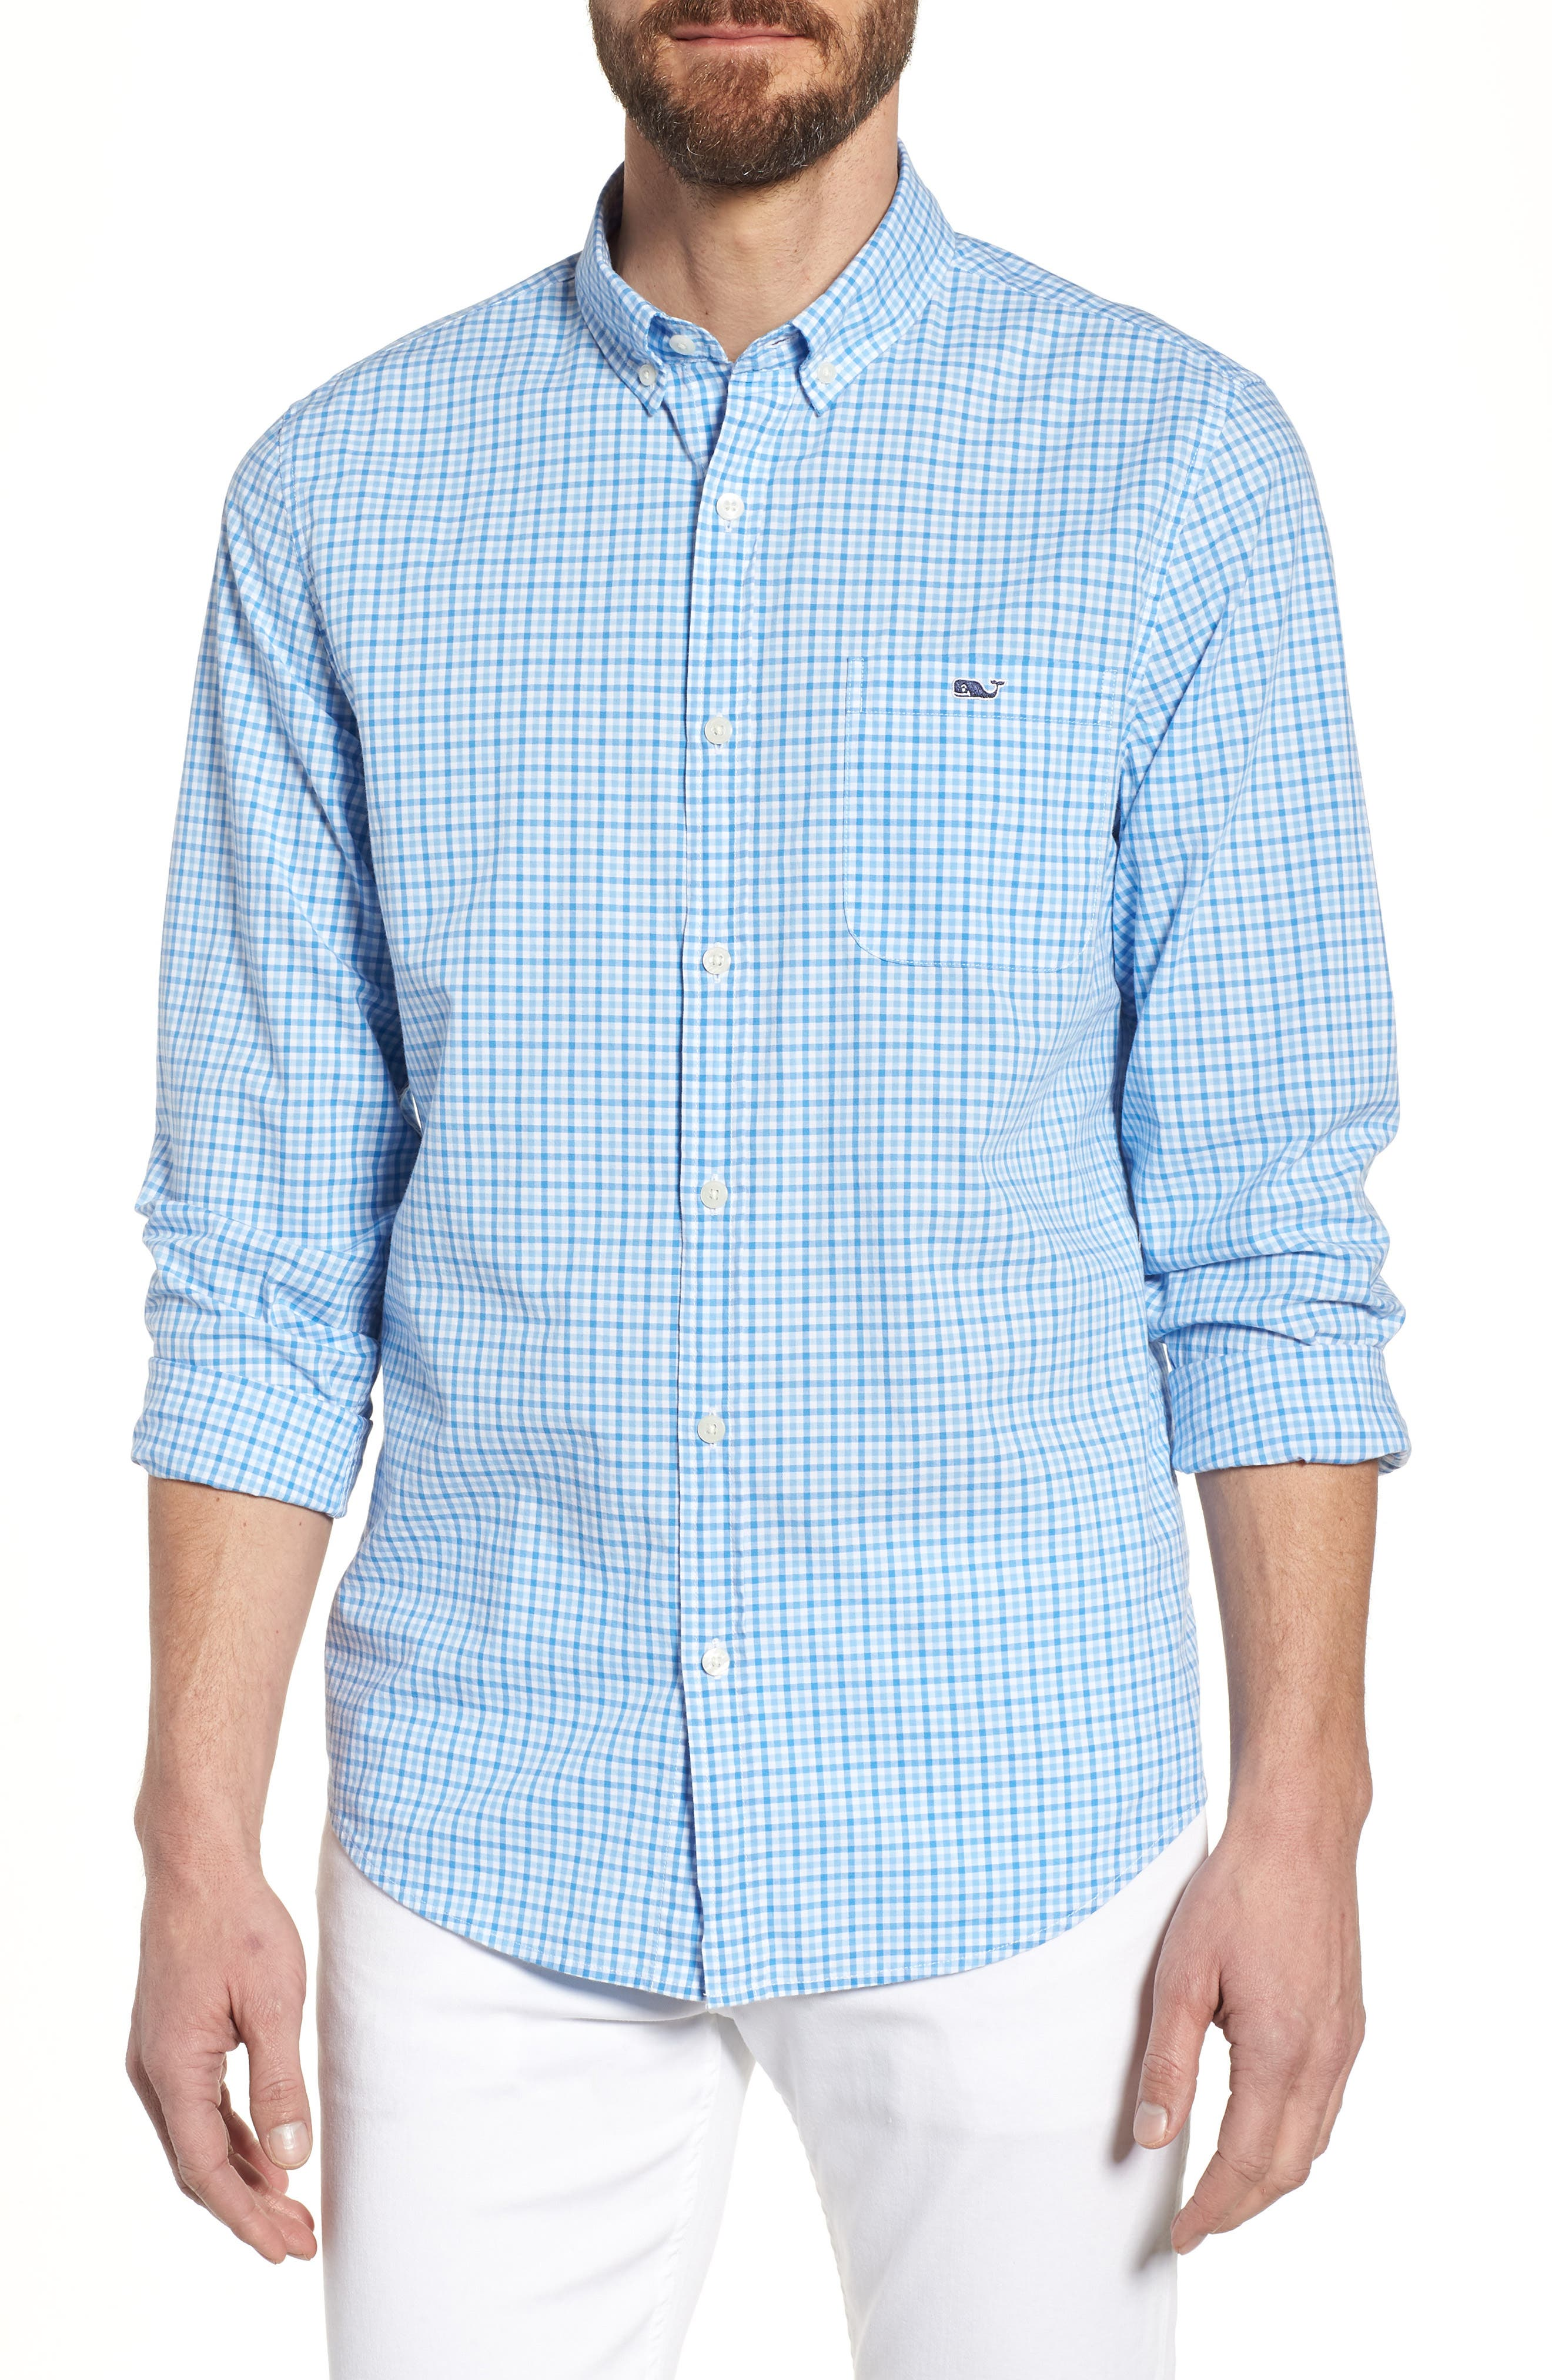 Tipsy Turtle Check Slim Fit Sport Shirt,                         Main,                         color, Harbor Cay